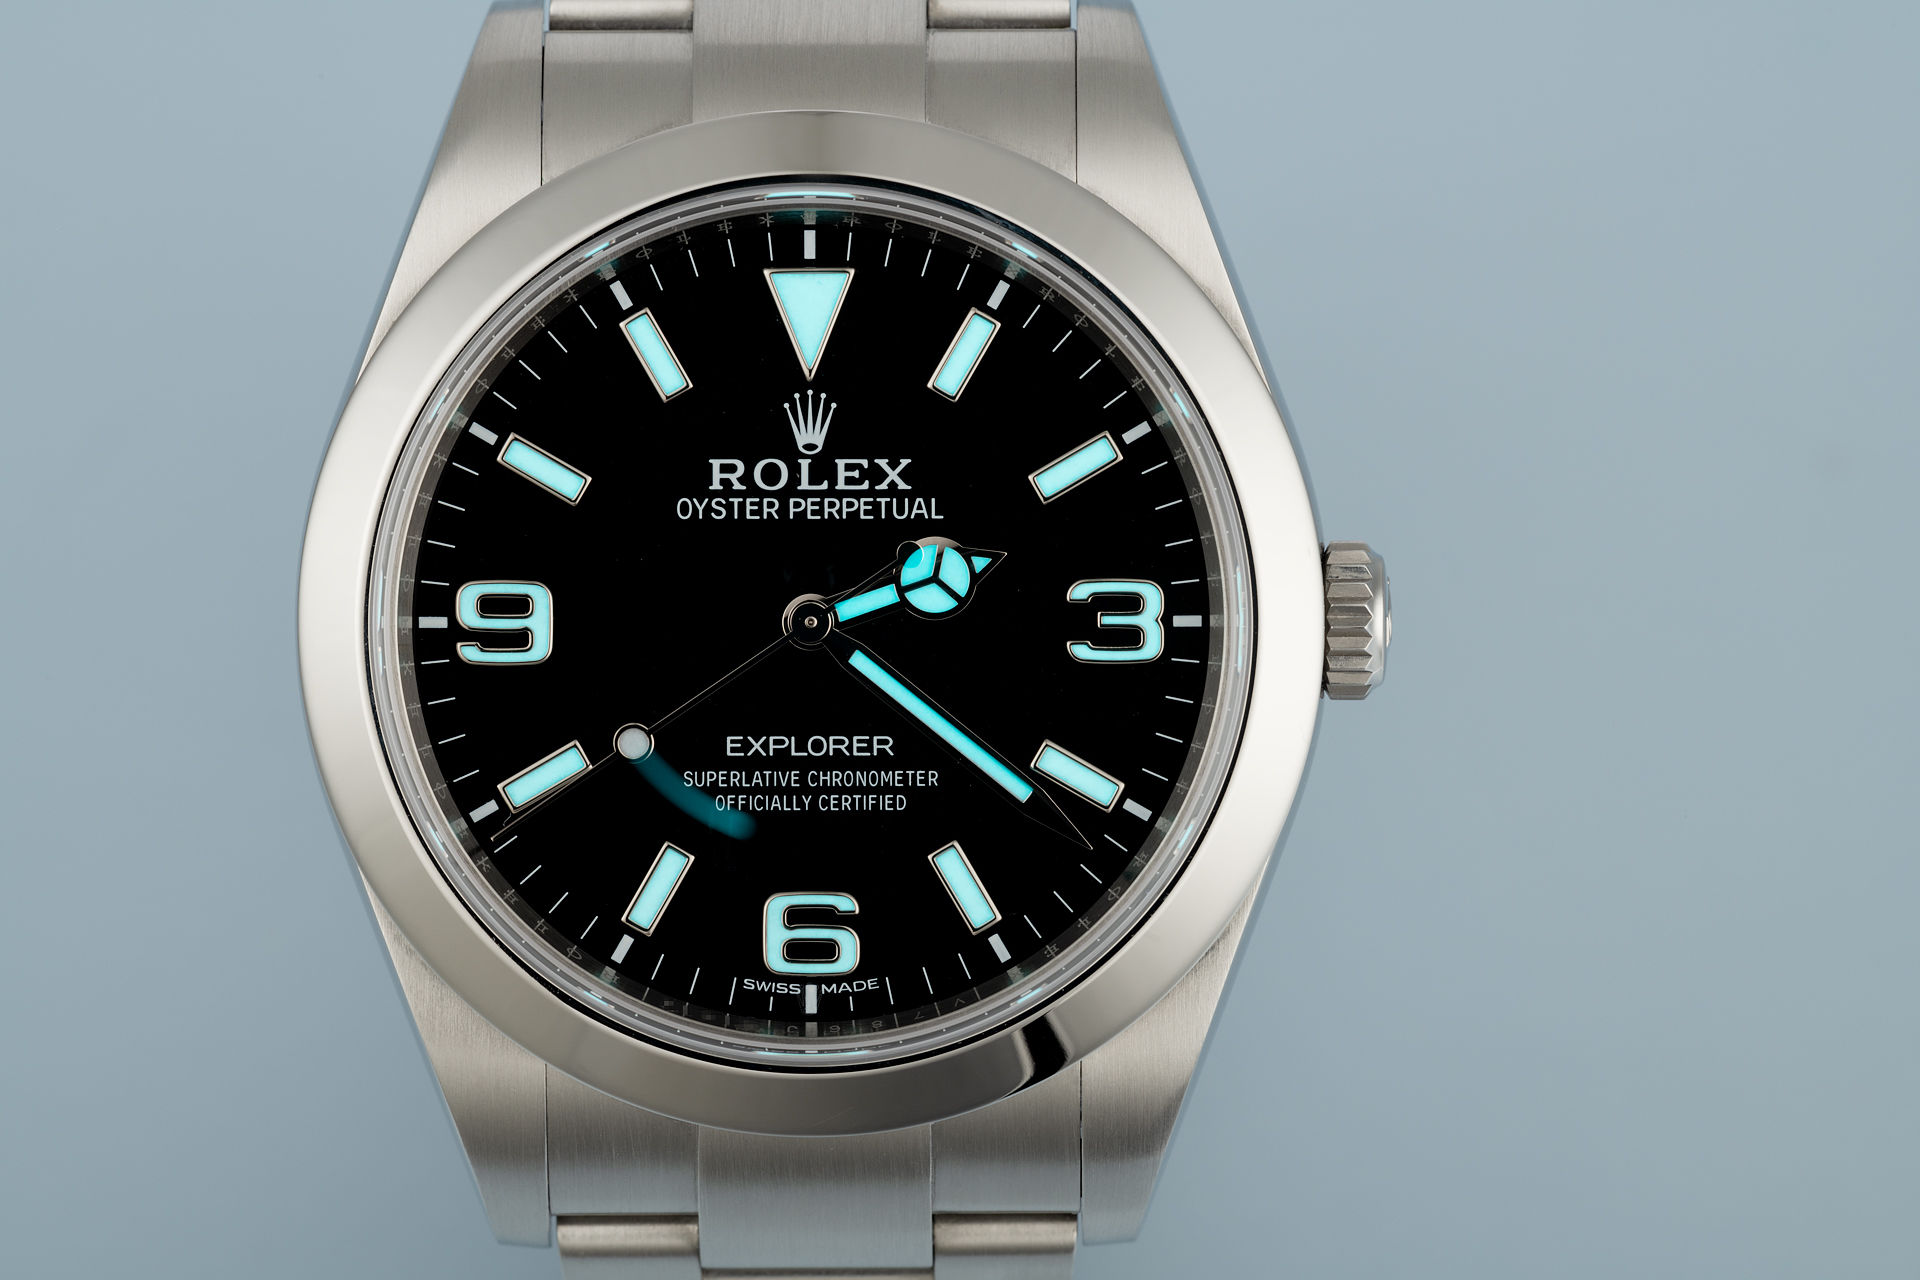 ref 214270 | New Chromalight Model | Rolex Explorer